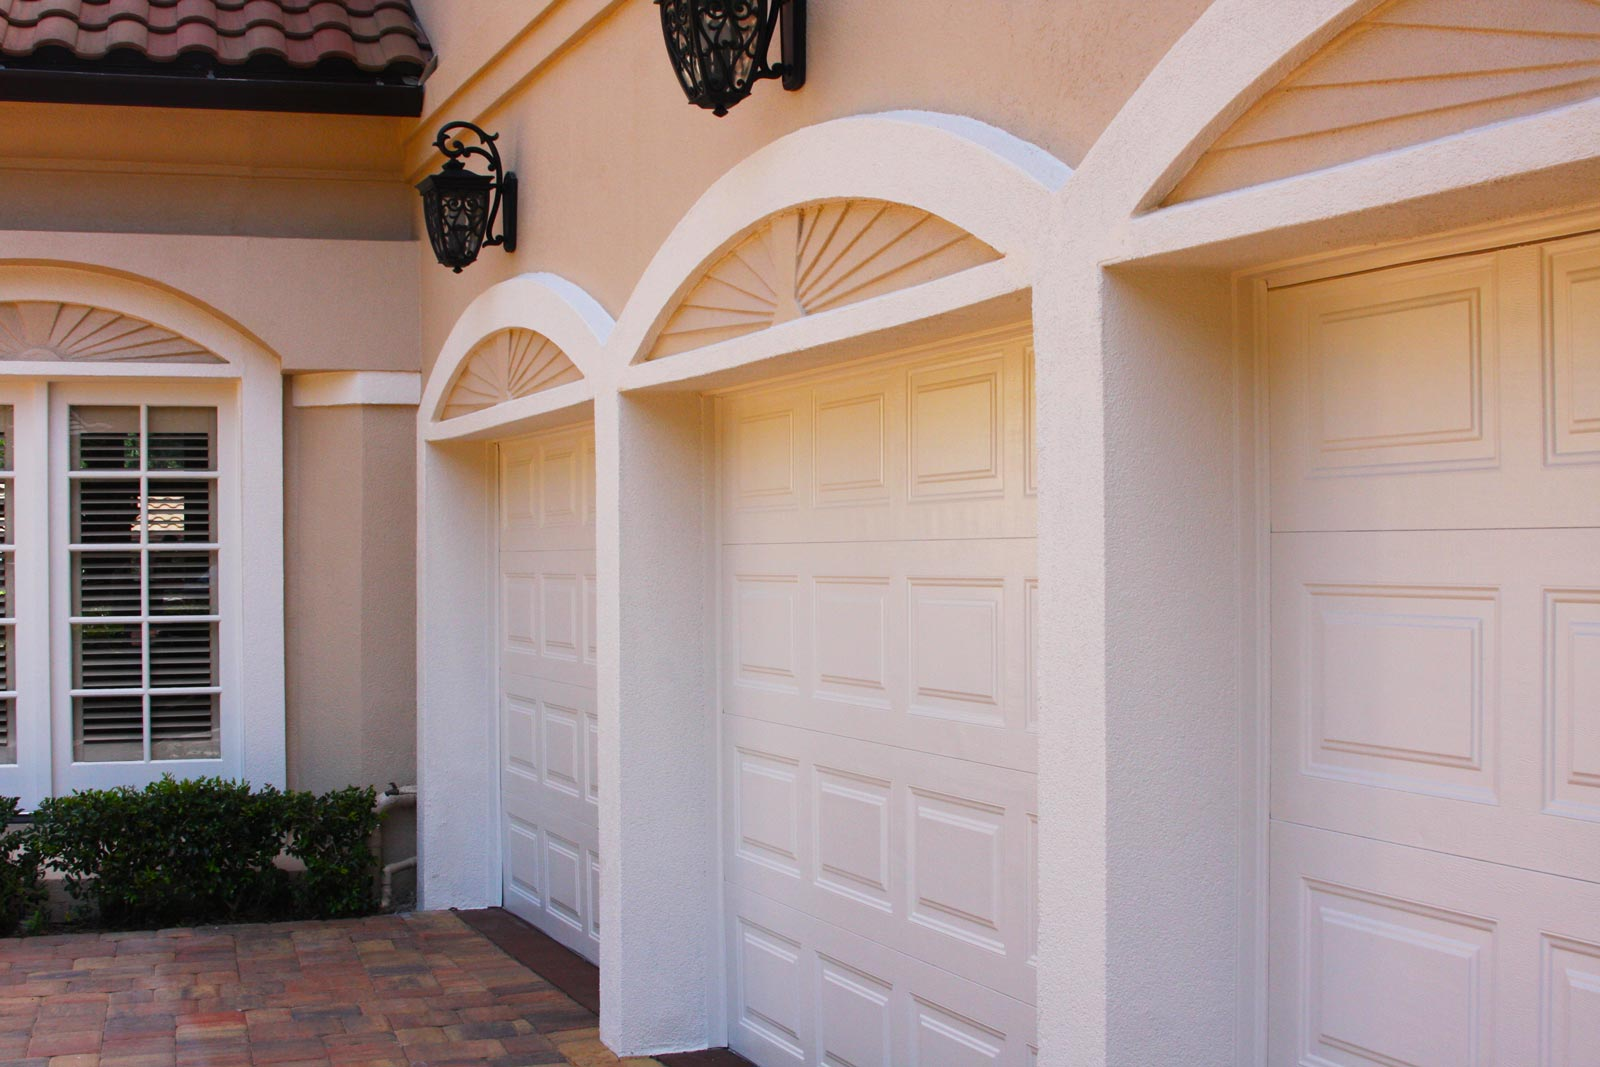 Cockrell Hill-Grand Prairie TX Professional Painting Contractors-We offer Residential & Commercial Painting, Interior Painting, Exterior Painting, Primer Painting, Industrial Painting, Professional Painters, Institutional Painters, and more.